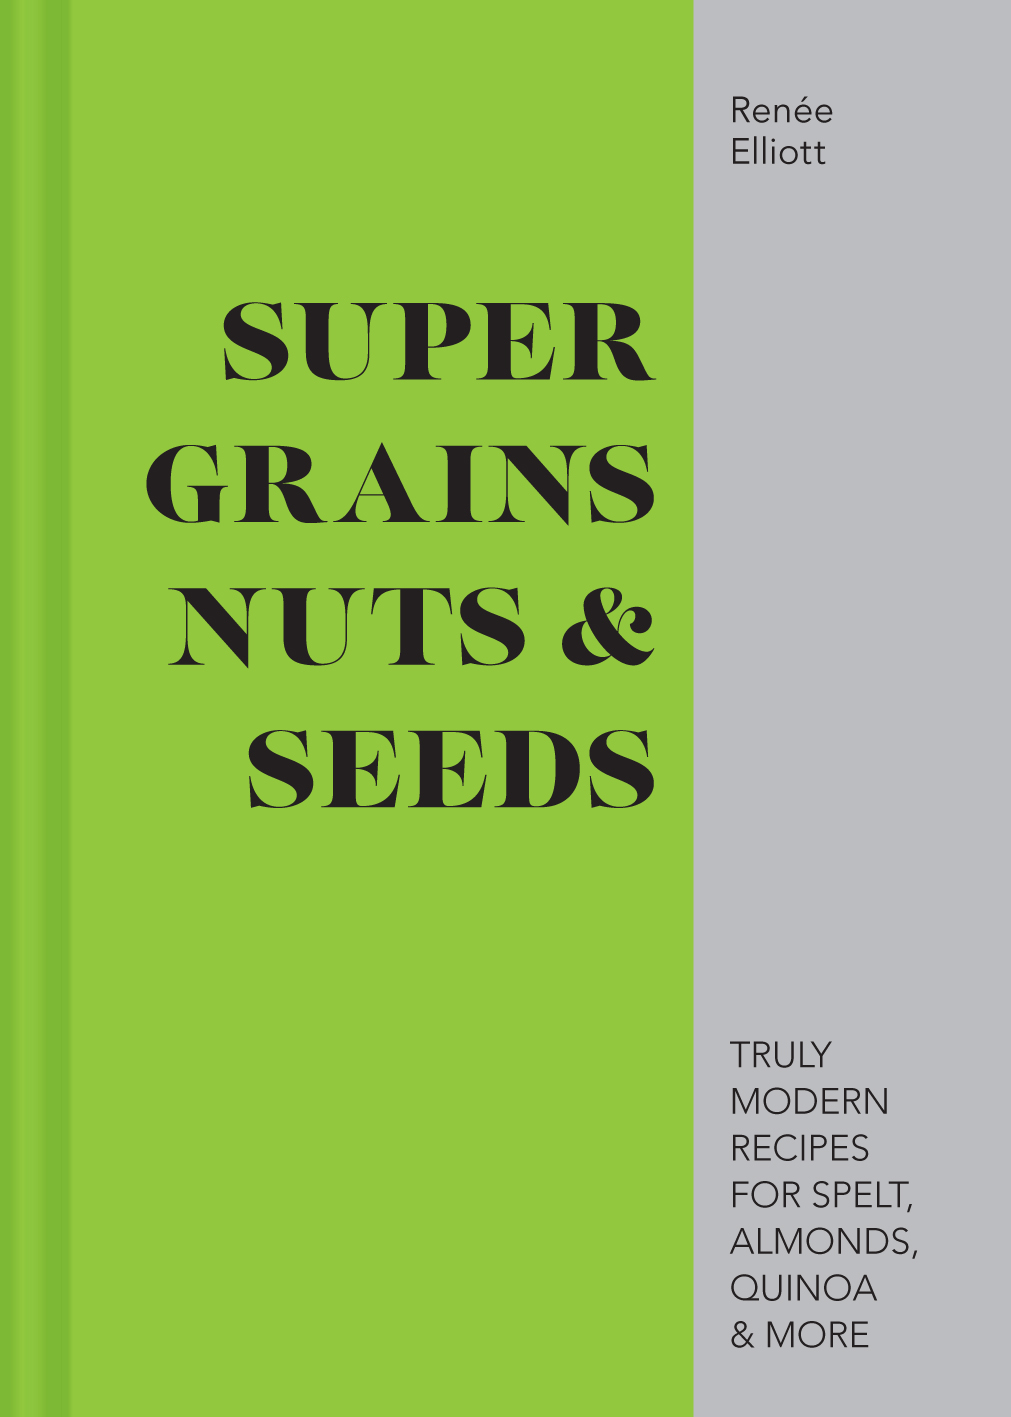 Super Grains, Nuts & Seeds